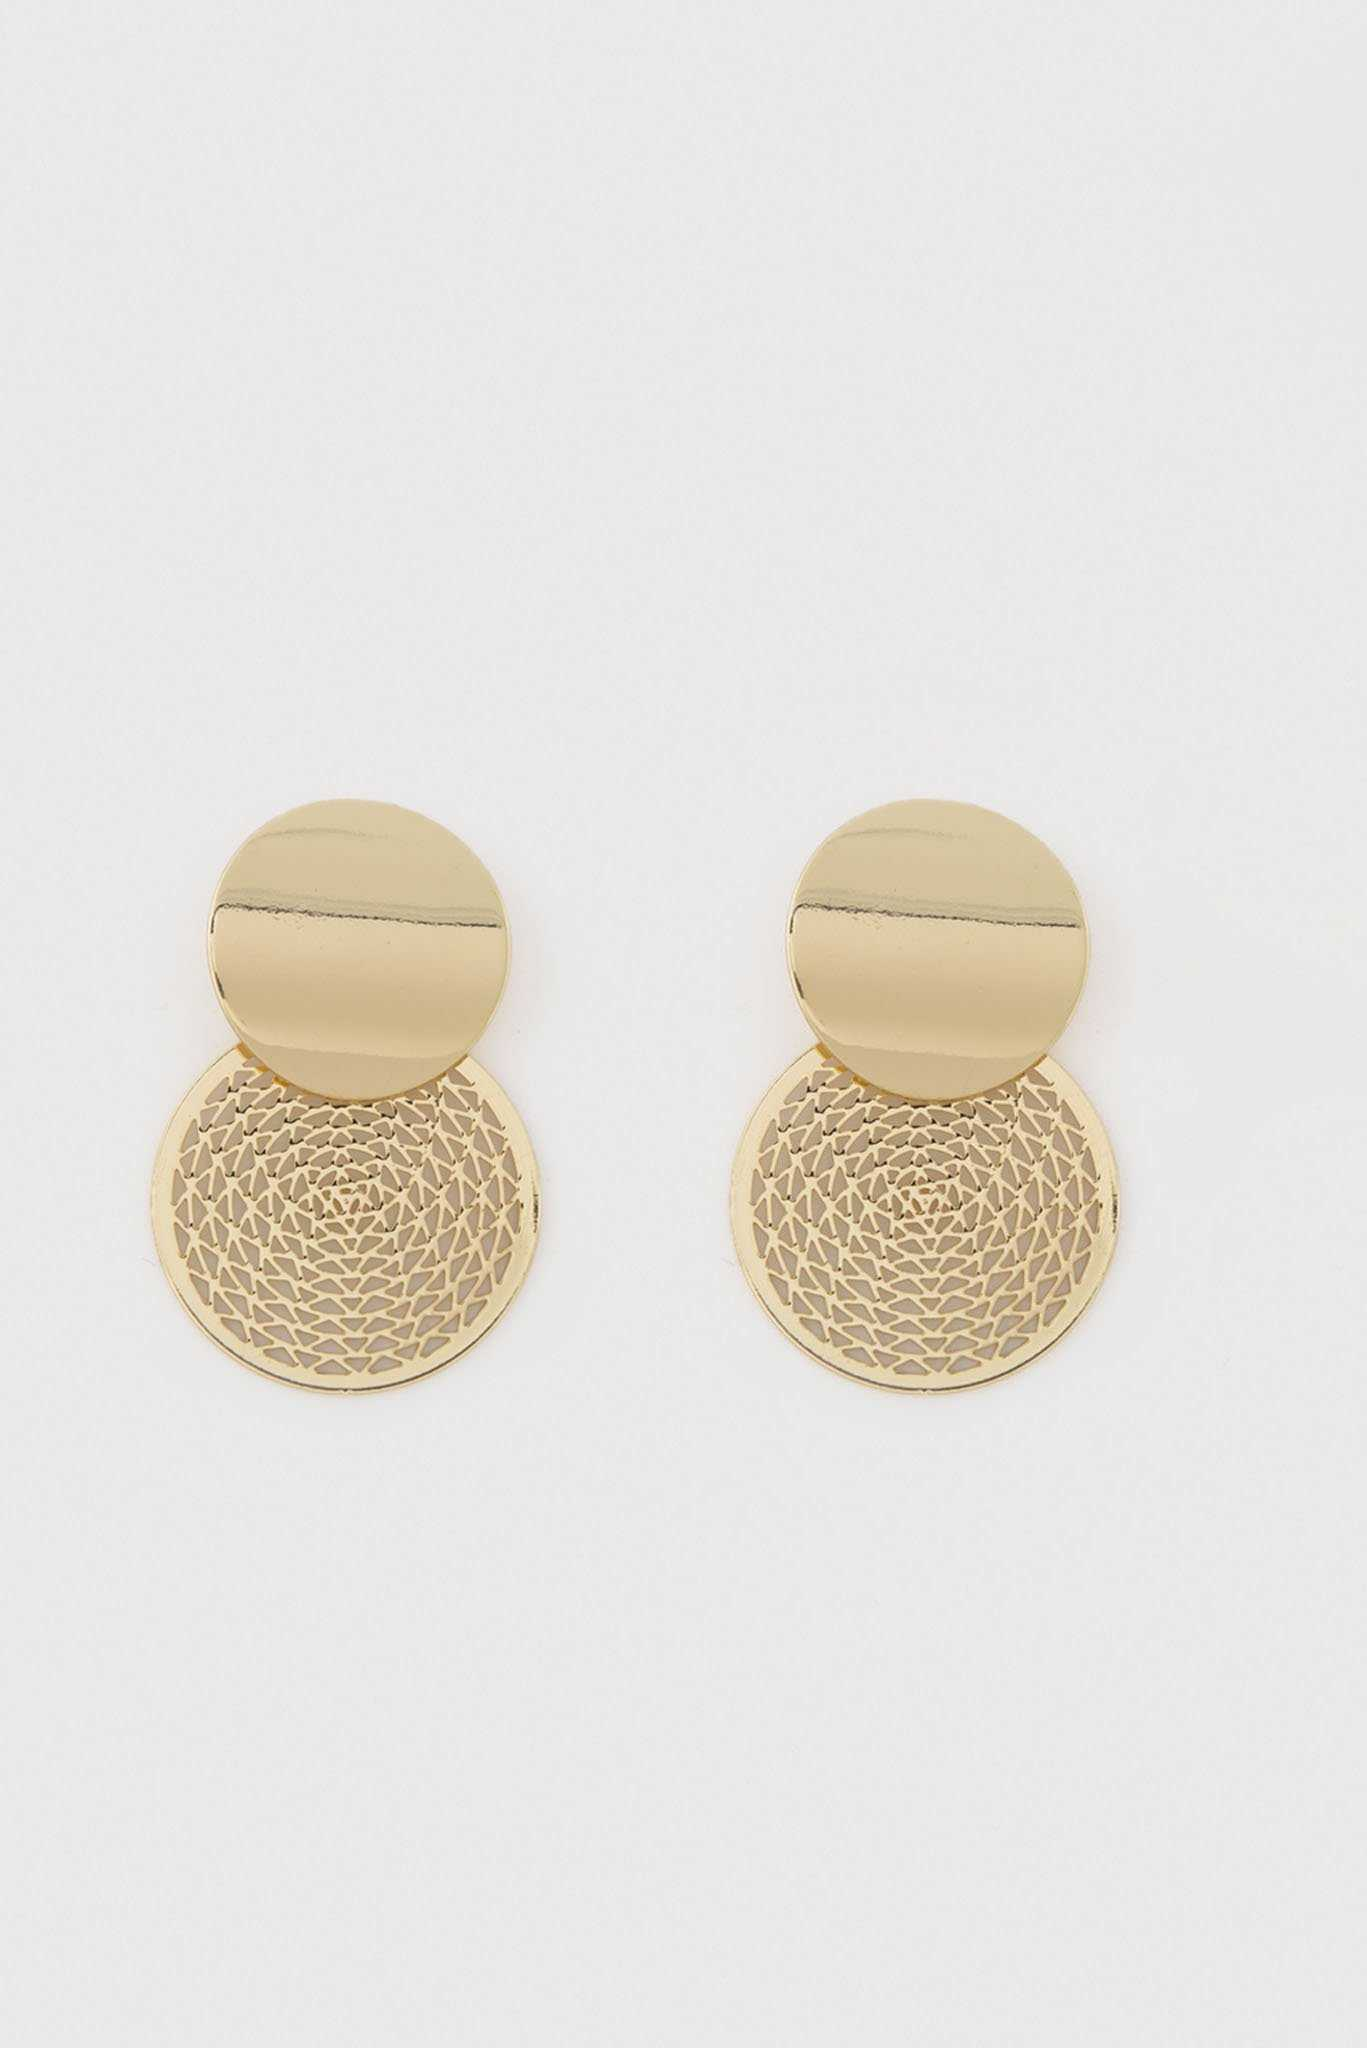 Tiered Round Earrings - Gold | Raw Orange